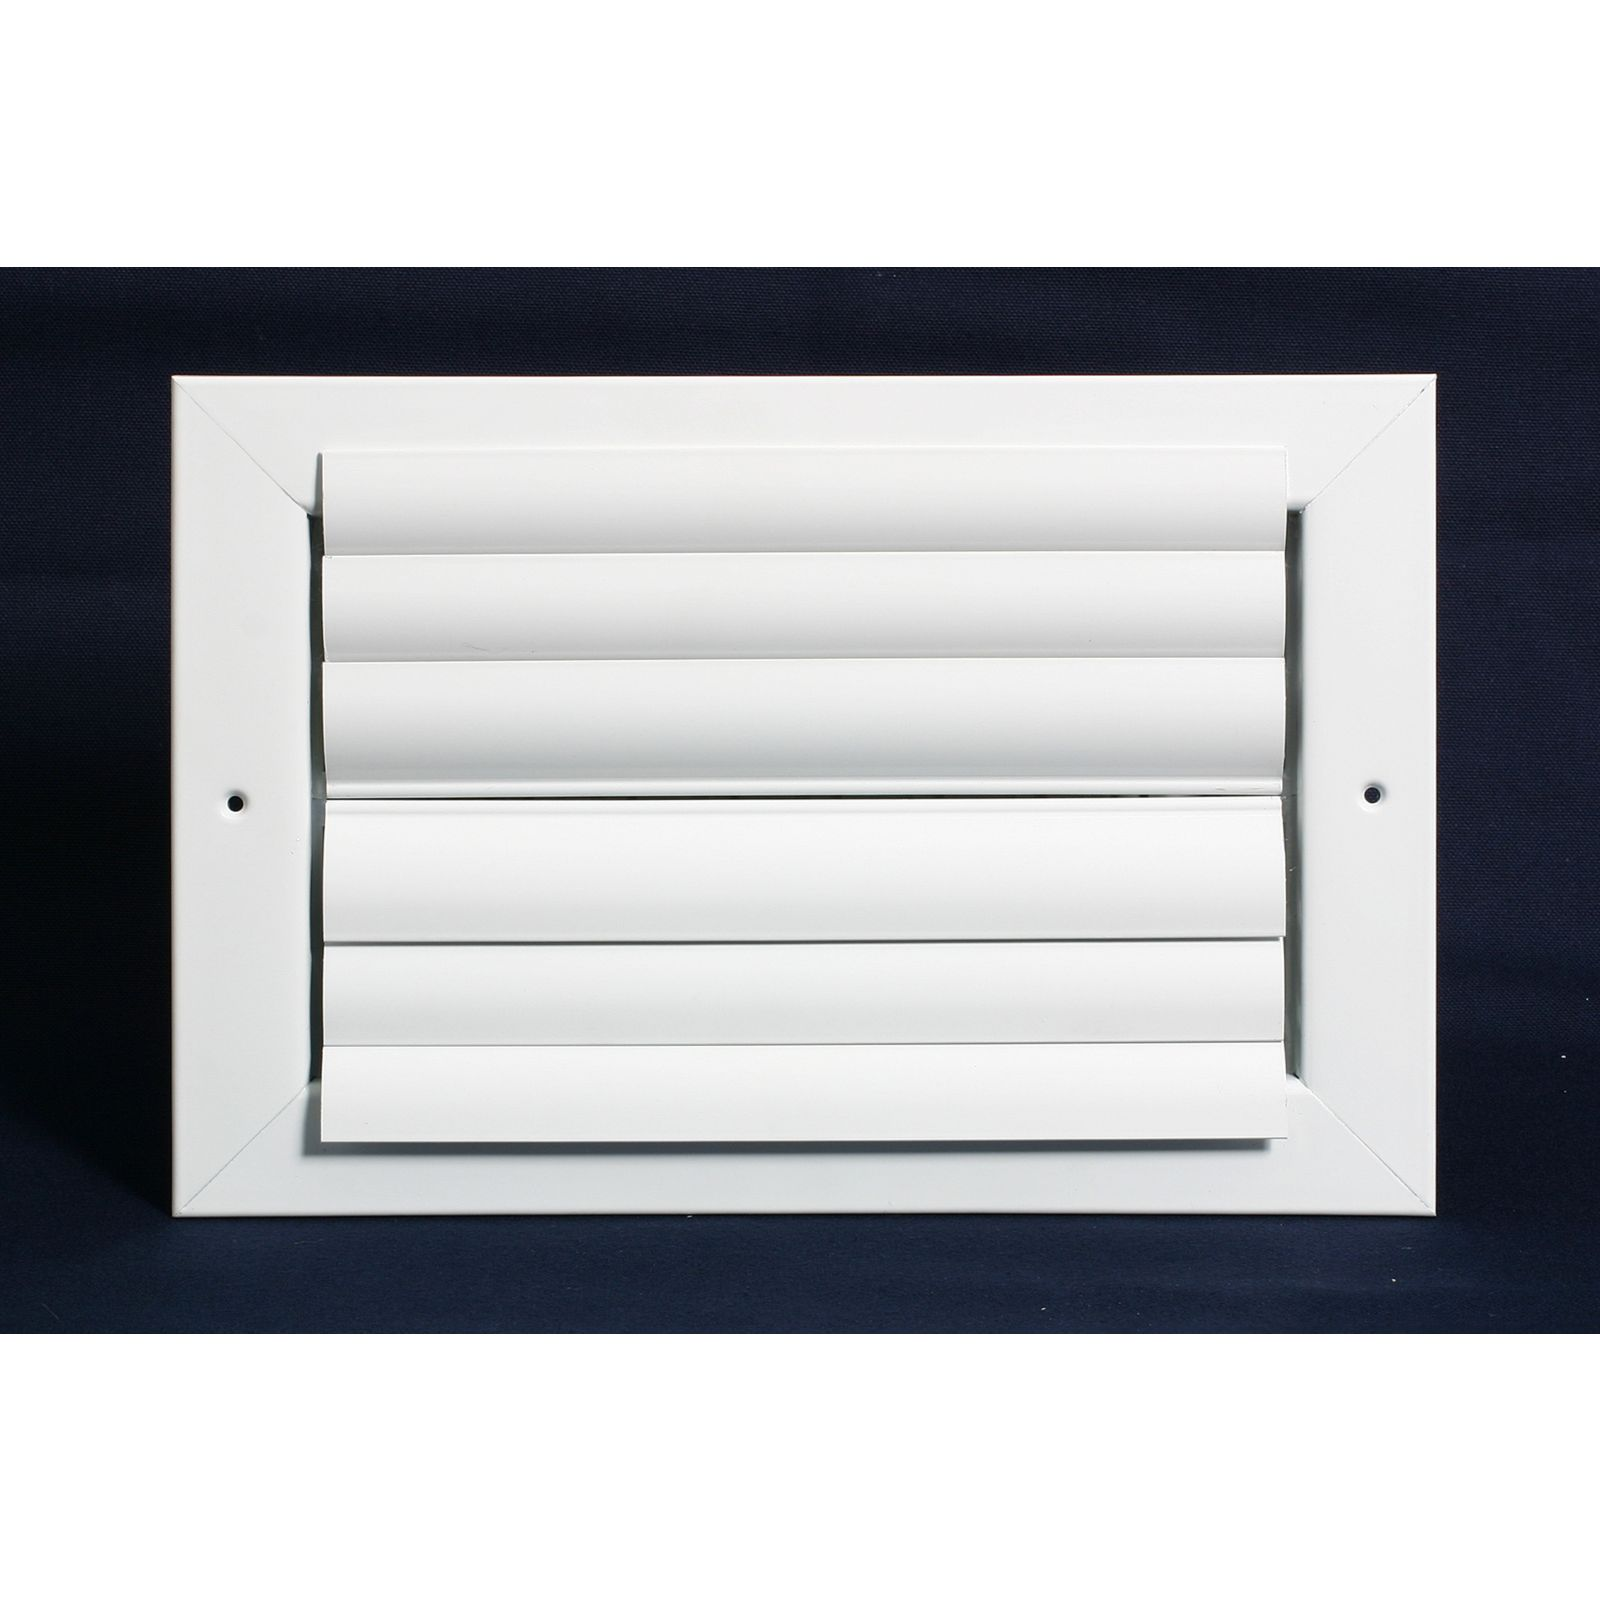 "Grille Tech CL2M1010 - Aluminum Ceiling 2-Way Deflection Supply, Multi-shutter 10"" X 10"" White"